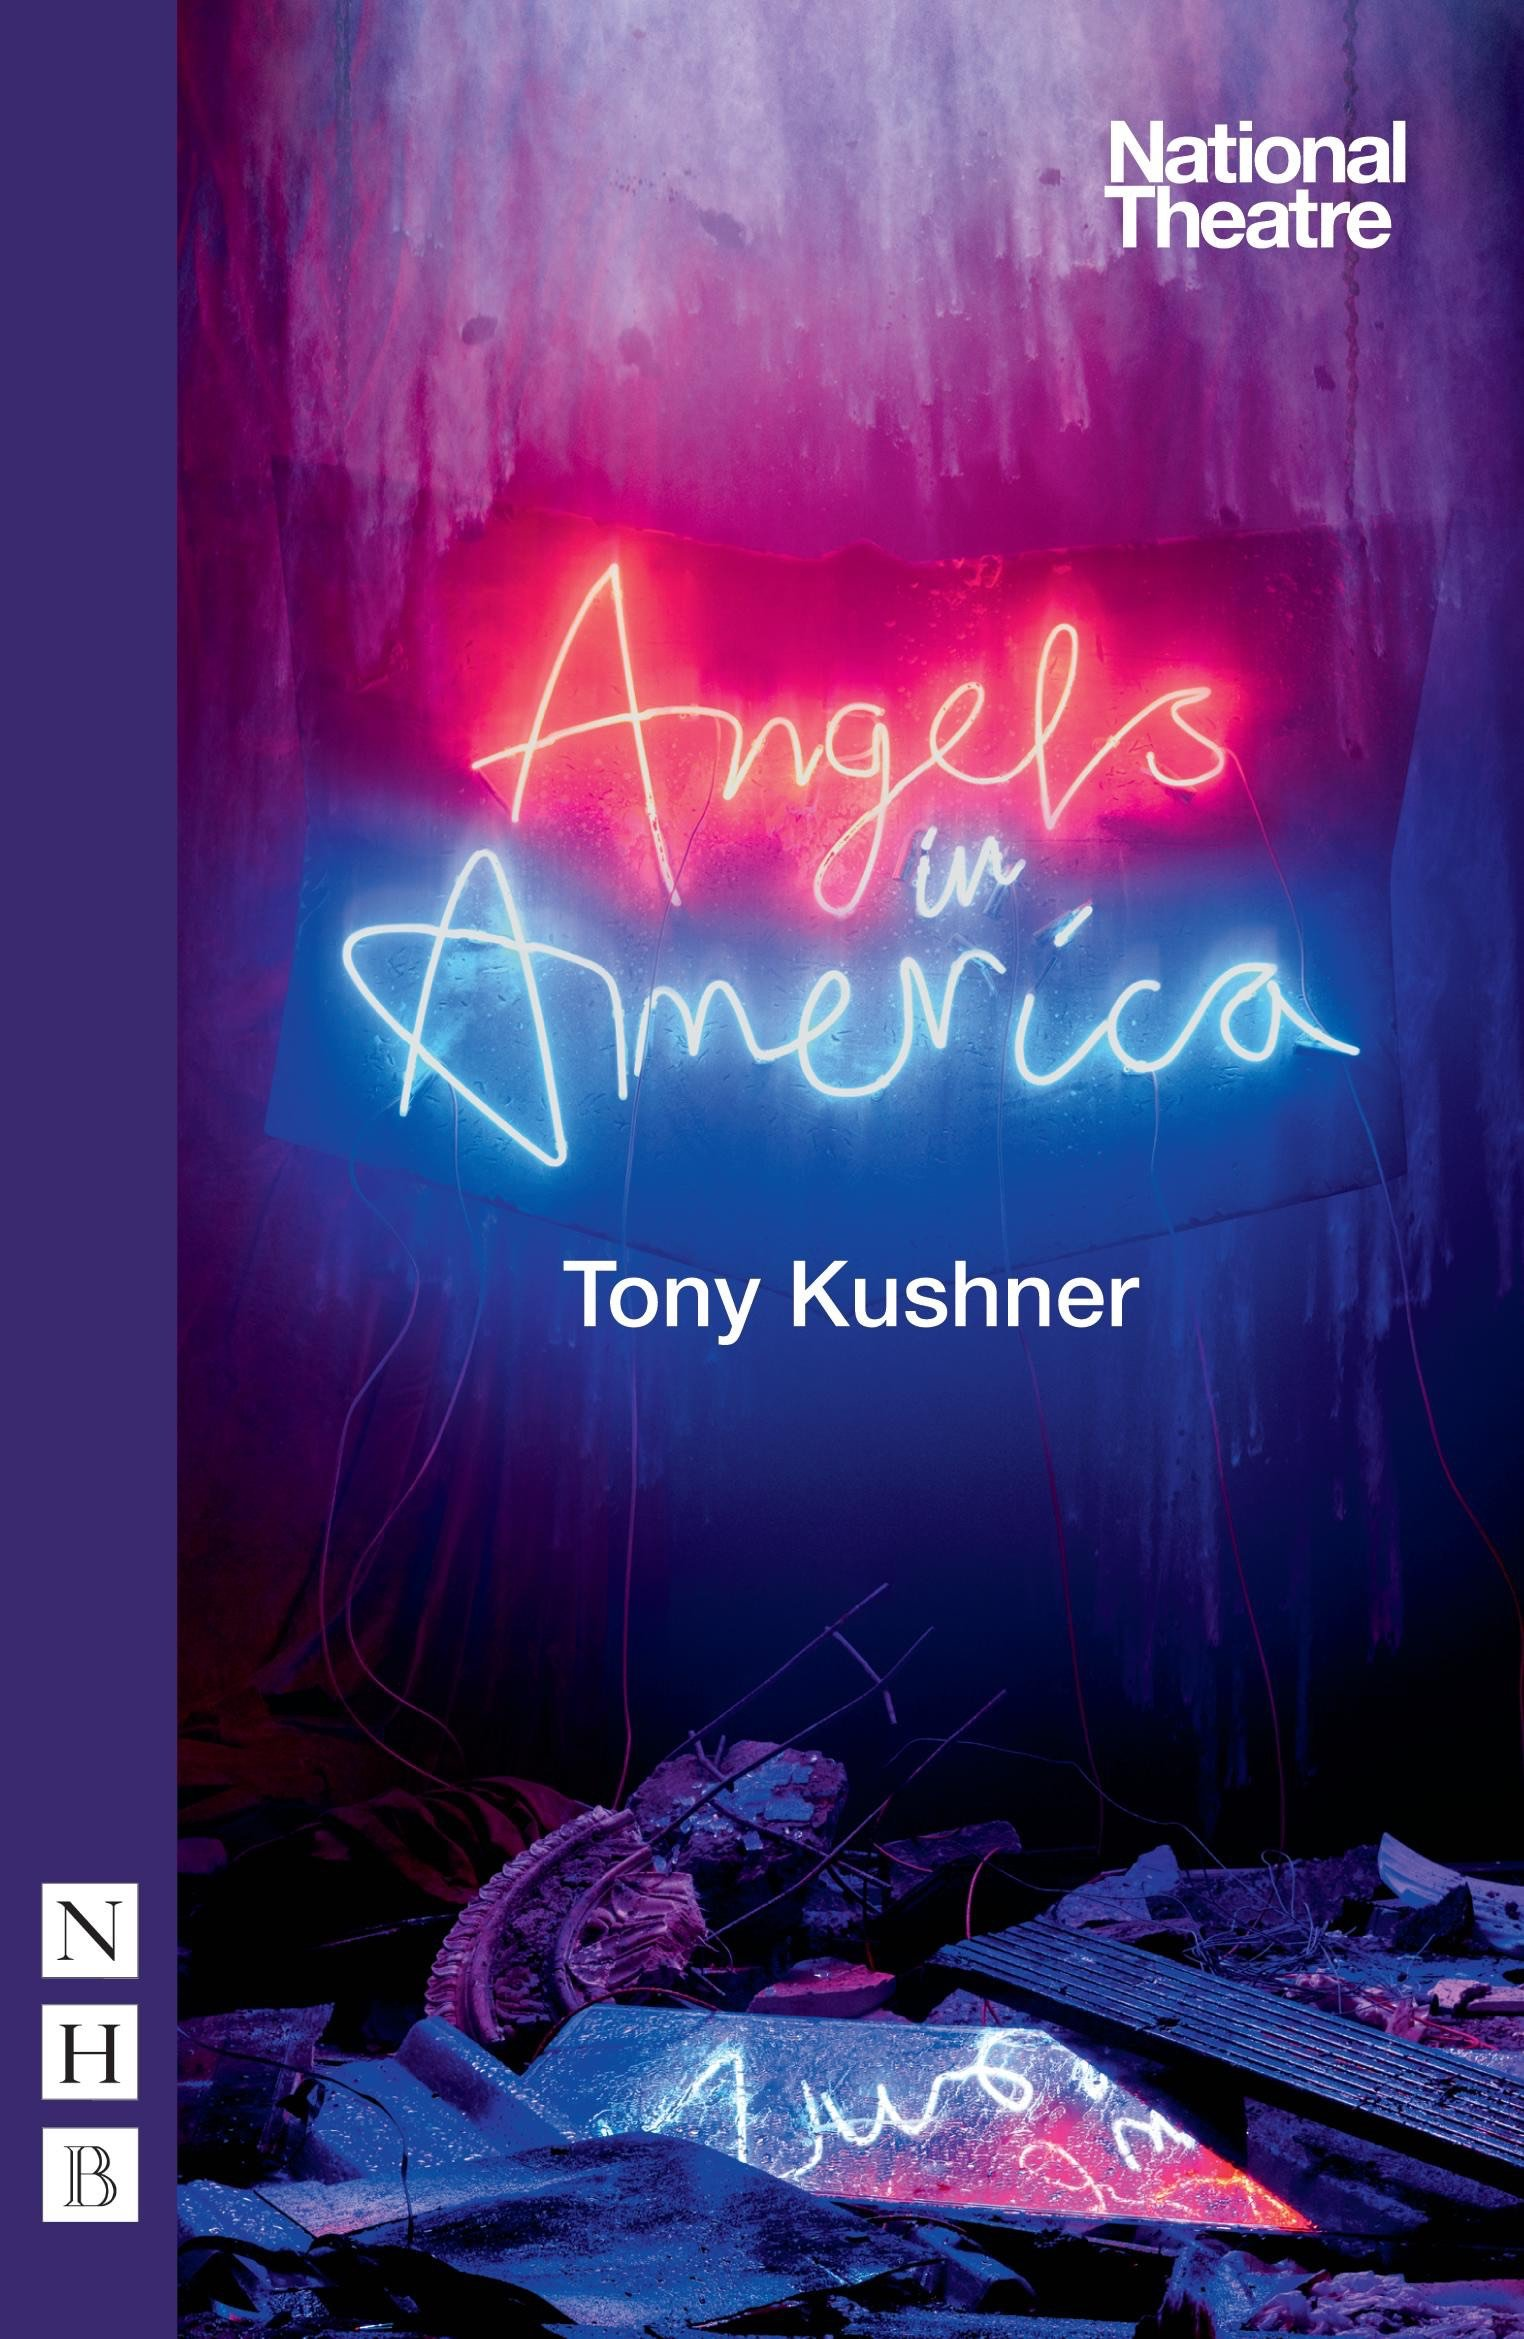 Angels In America Pdf Ebook ISBN-10 1848426313, ISBN-13 978